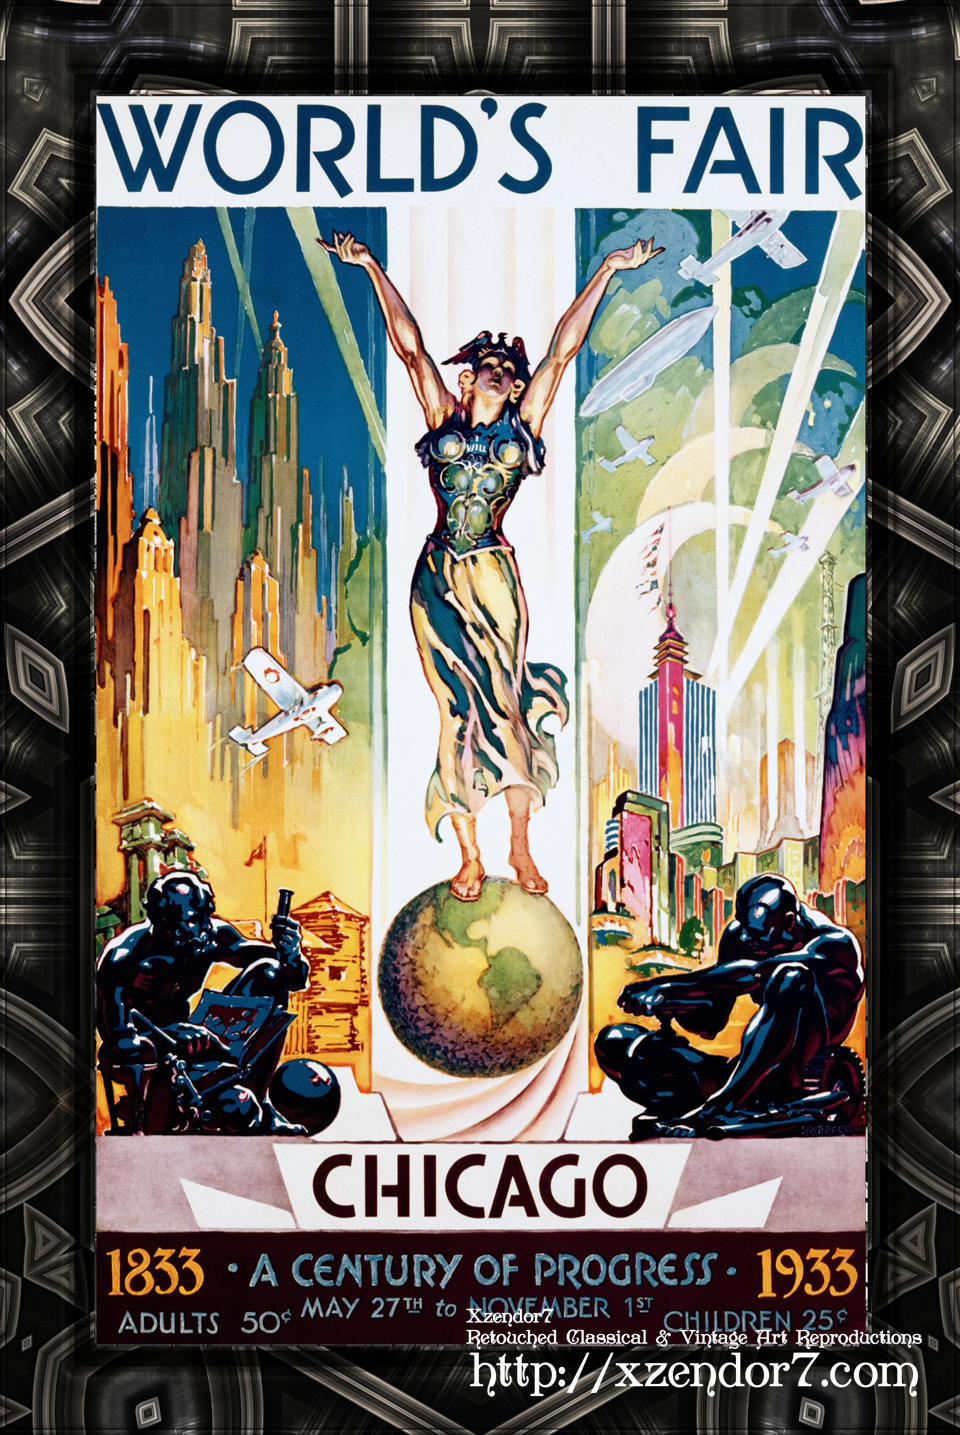 Chicago World's Fair - A Century of Progress Vintage Art Poster